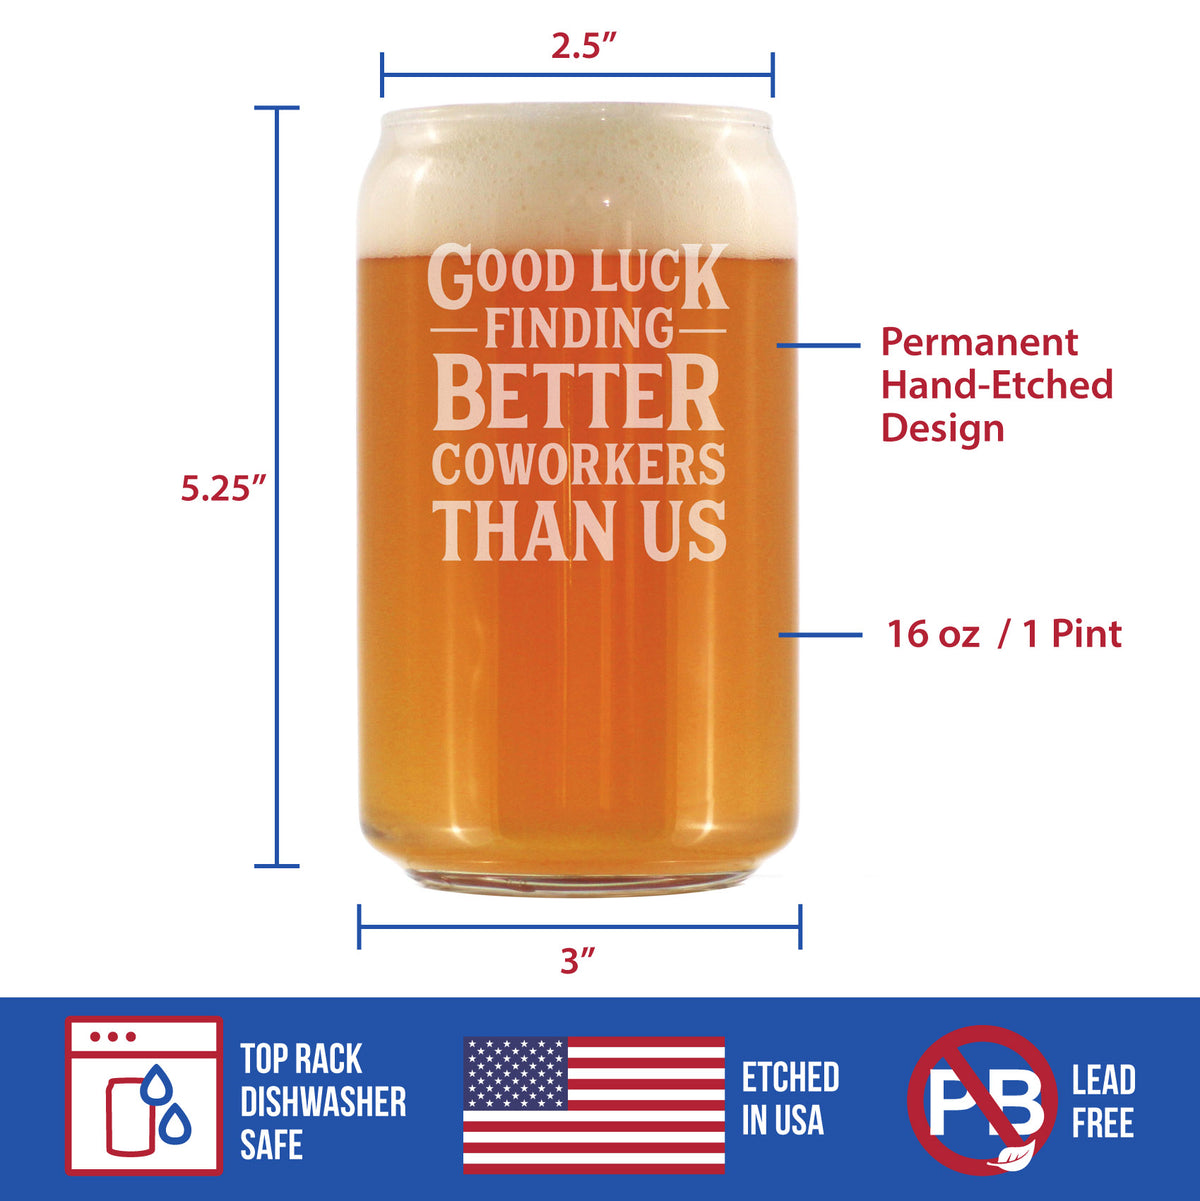 Good Luck Finding Better Coworkers Than Us - 16 Ounce Beer Can Pint Glass